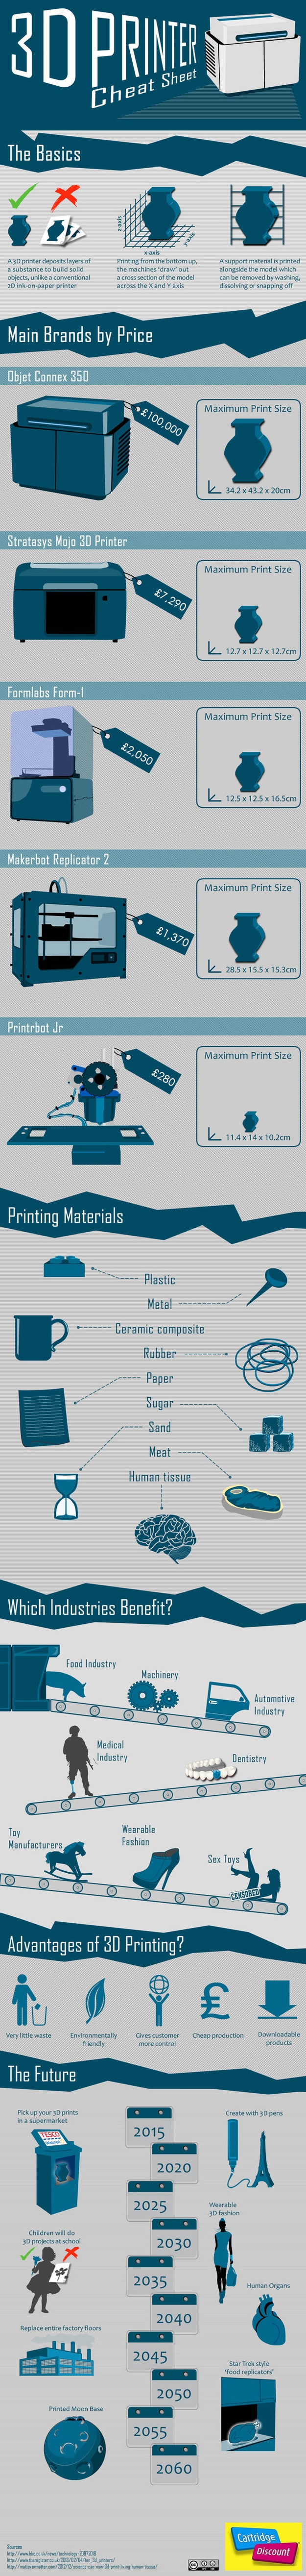 3D Printing 101: How It Works & Potential Applications [Infographic]